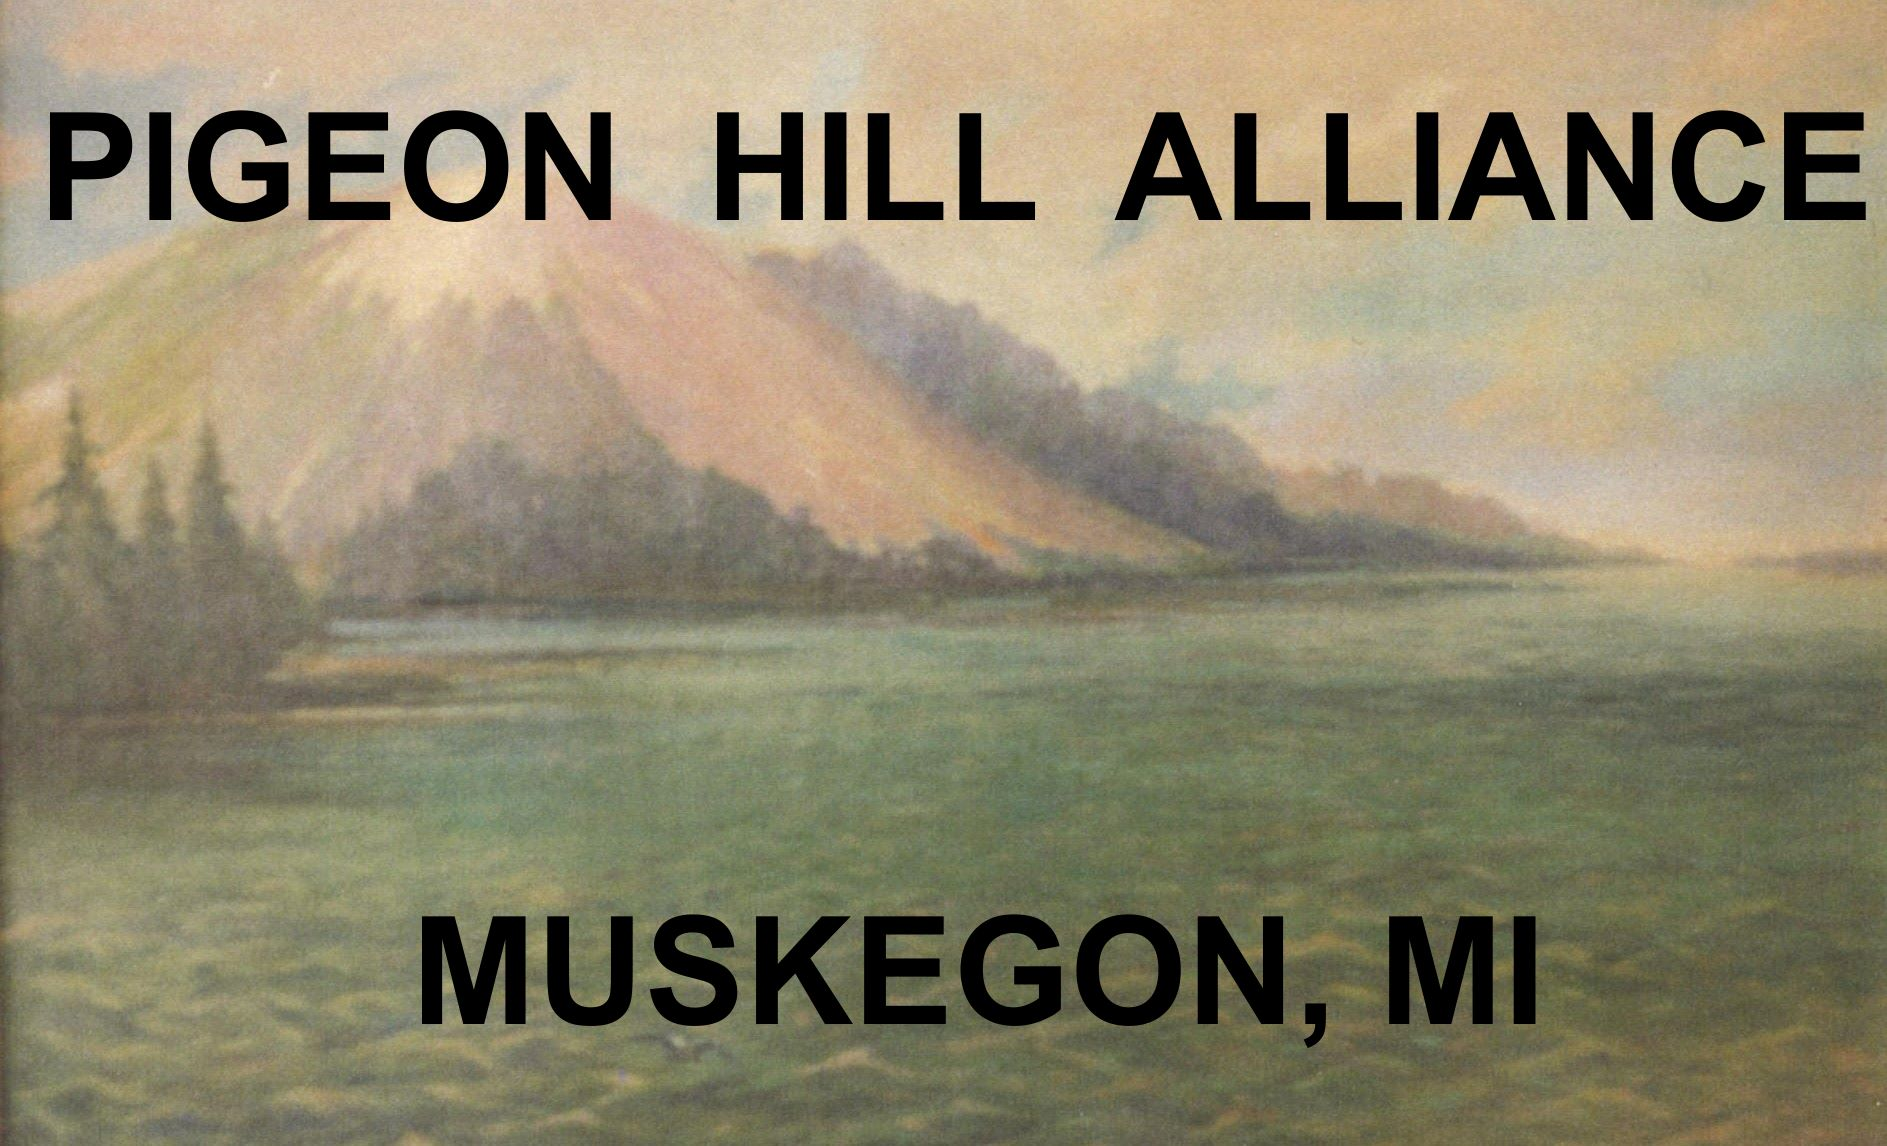 Pigeon Hill Alliance